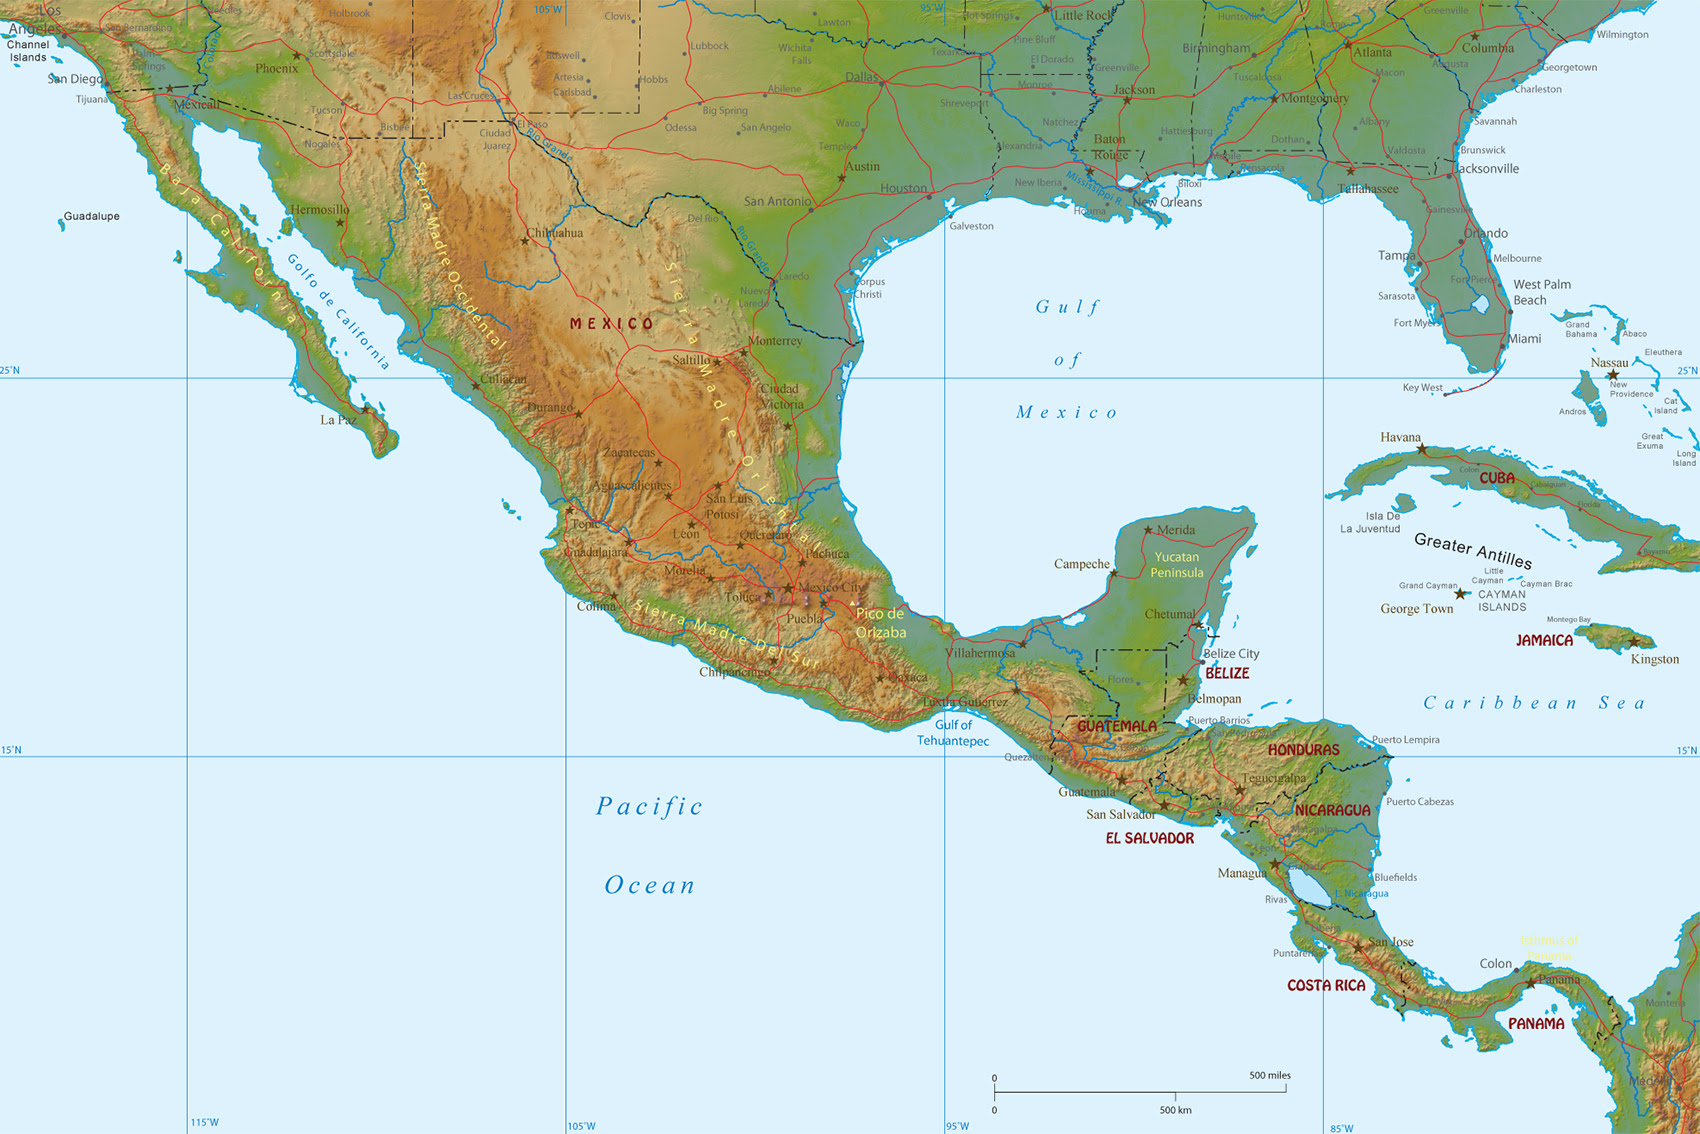 Picture of: Mexico Central America And Caribbean Map